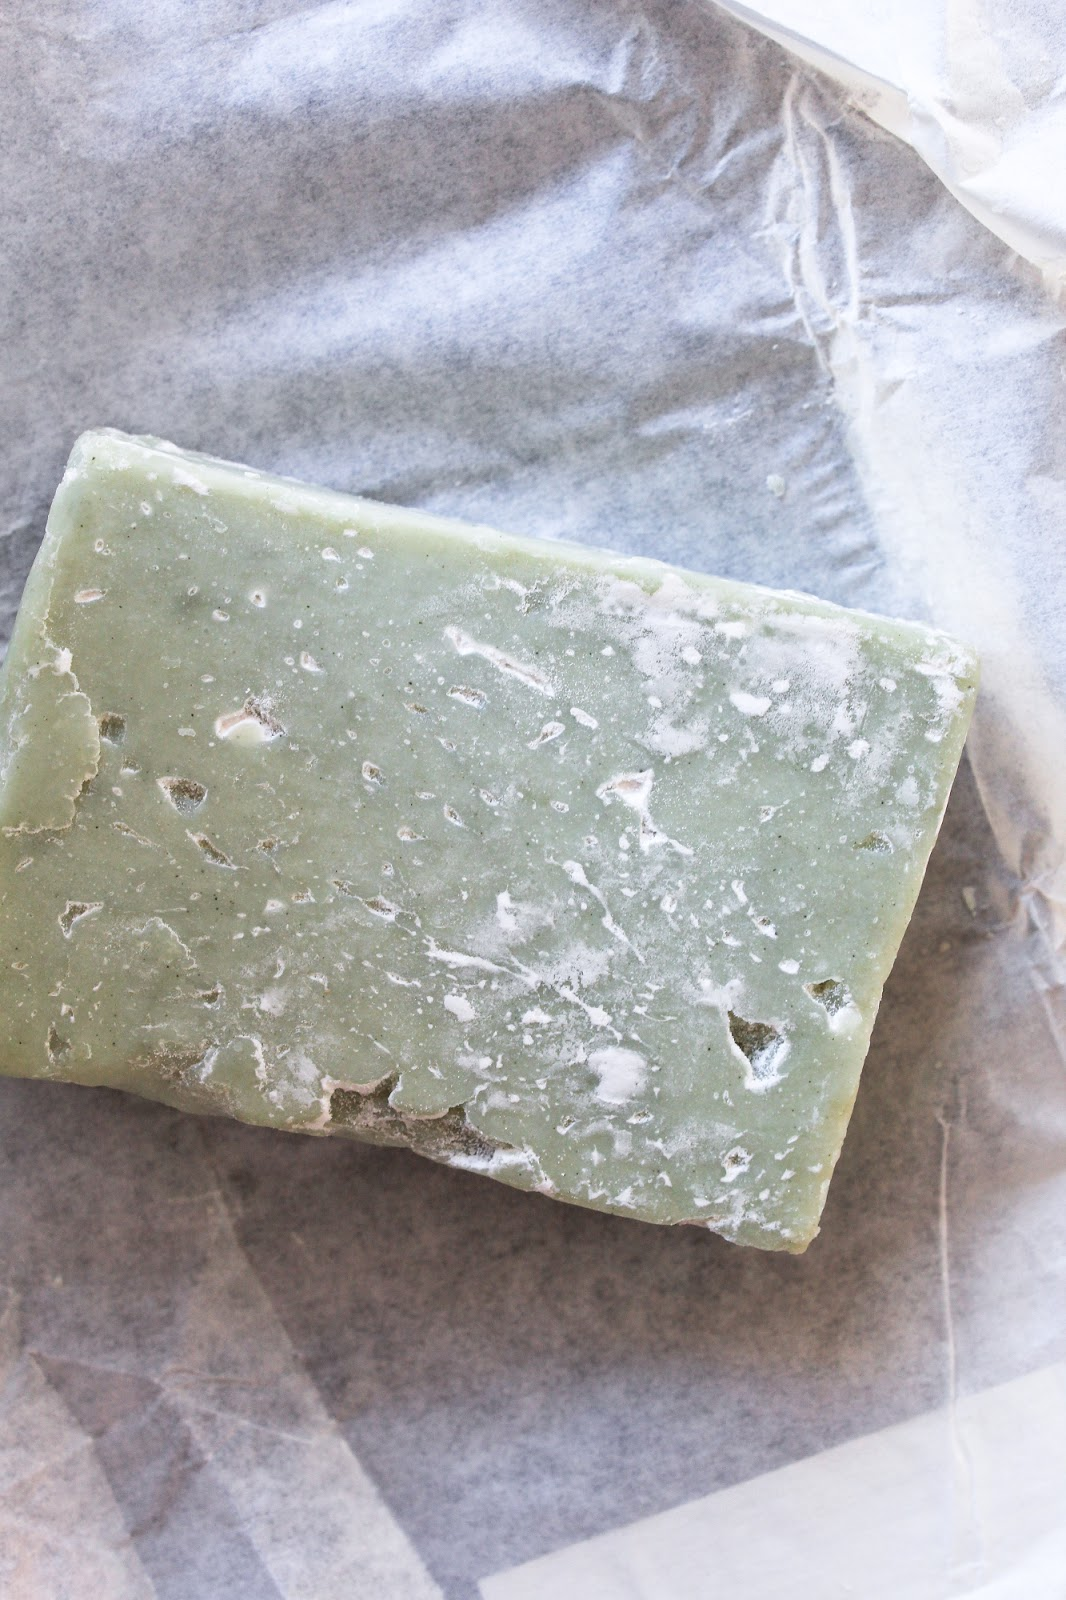 Natural Wisdom Spa Solid Shampoo & Body Wash Bar Grapefruit & Lemongrass. Vegan, plastic free, natural, biodegradable